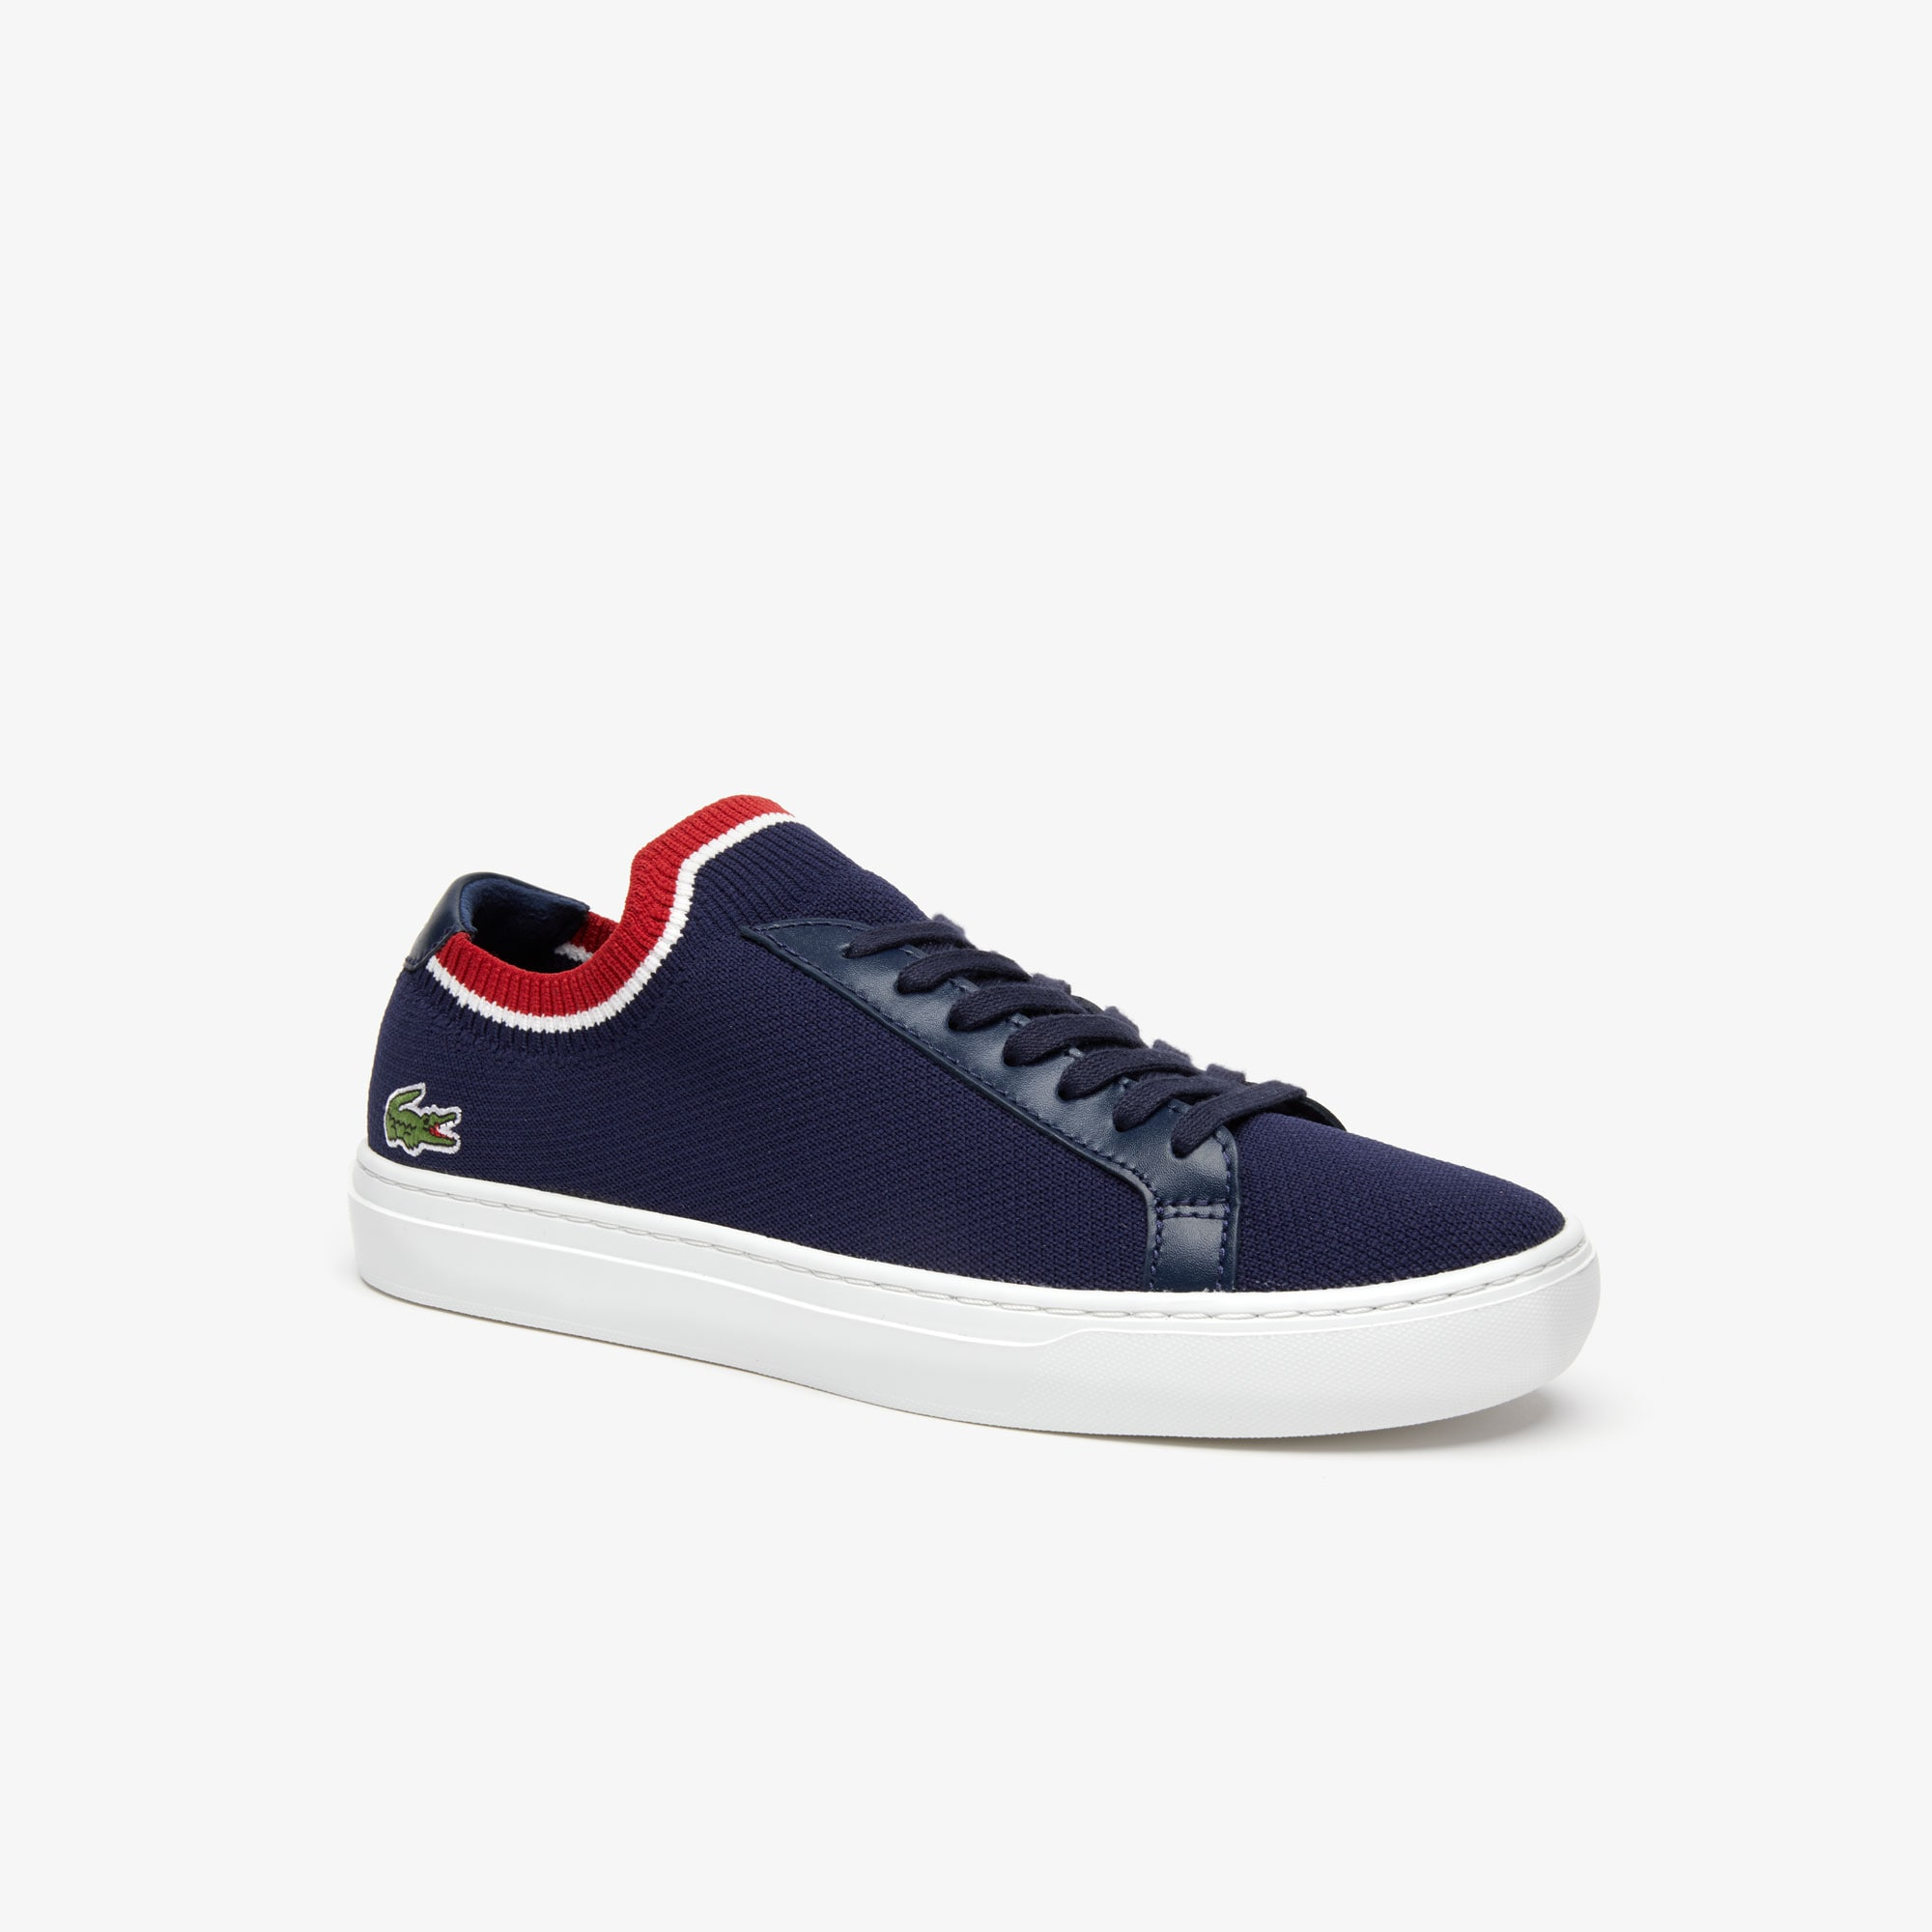 39b414bed Lacoste shoes for men: Sneakers, Trainers, Boots | LACOSTE